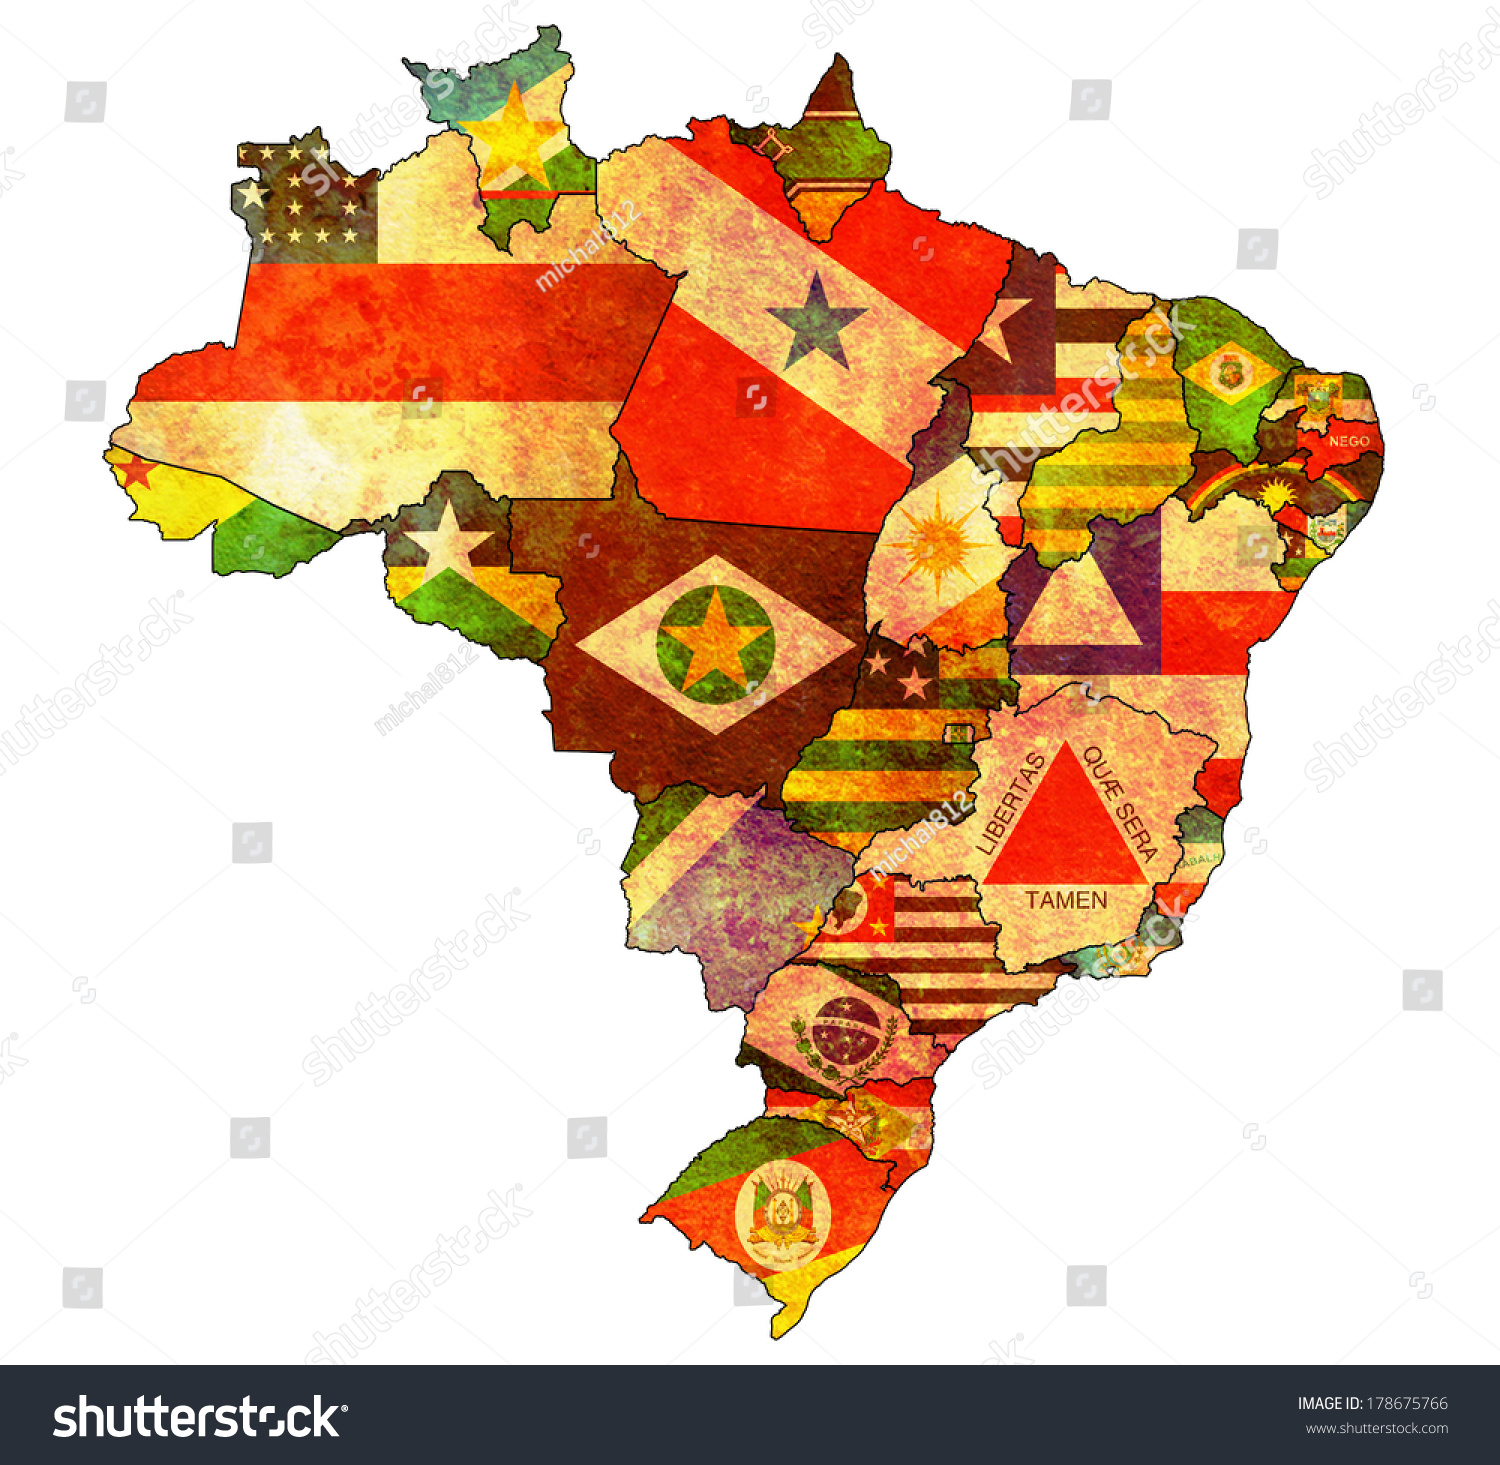 Brazil Map With States And Horror Minecraft Maps Map Practice Test - Brazil large scale road map